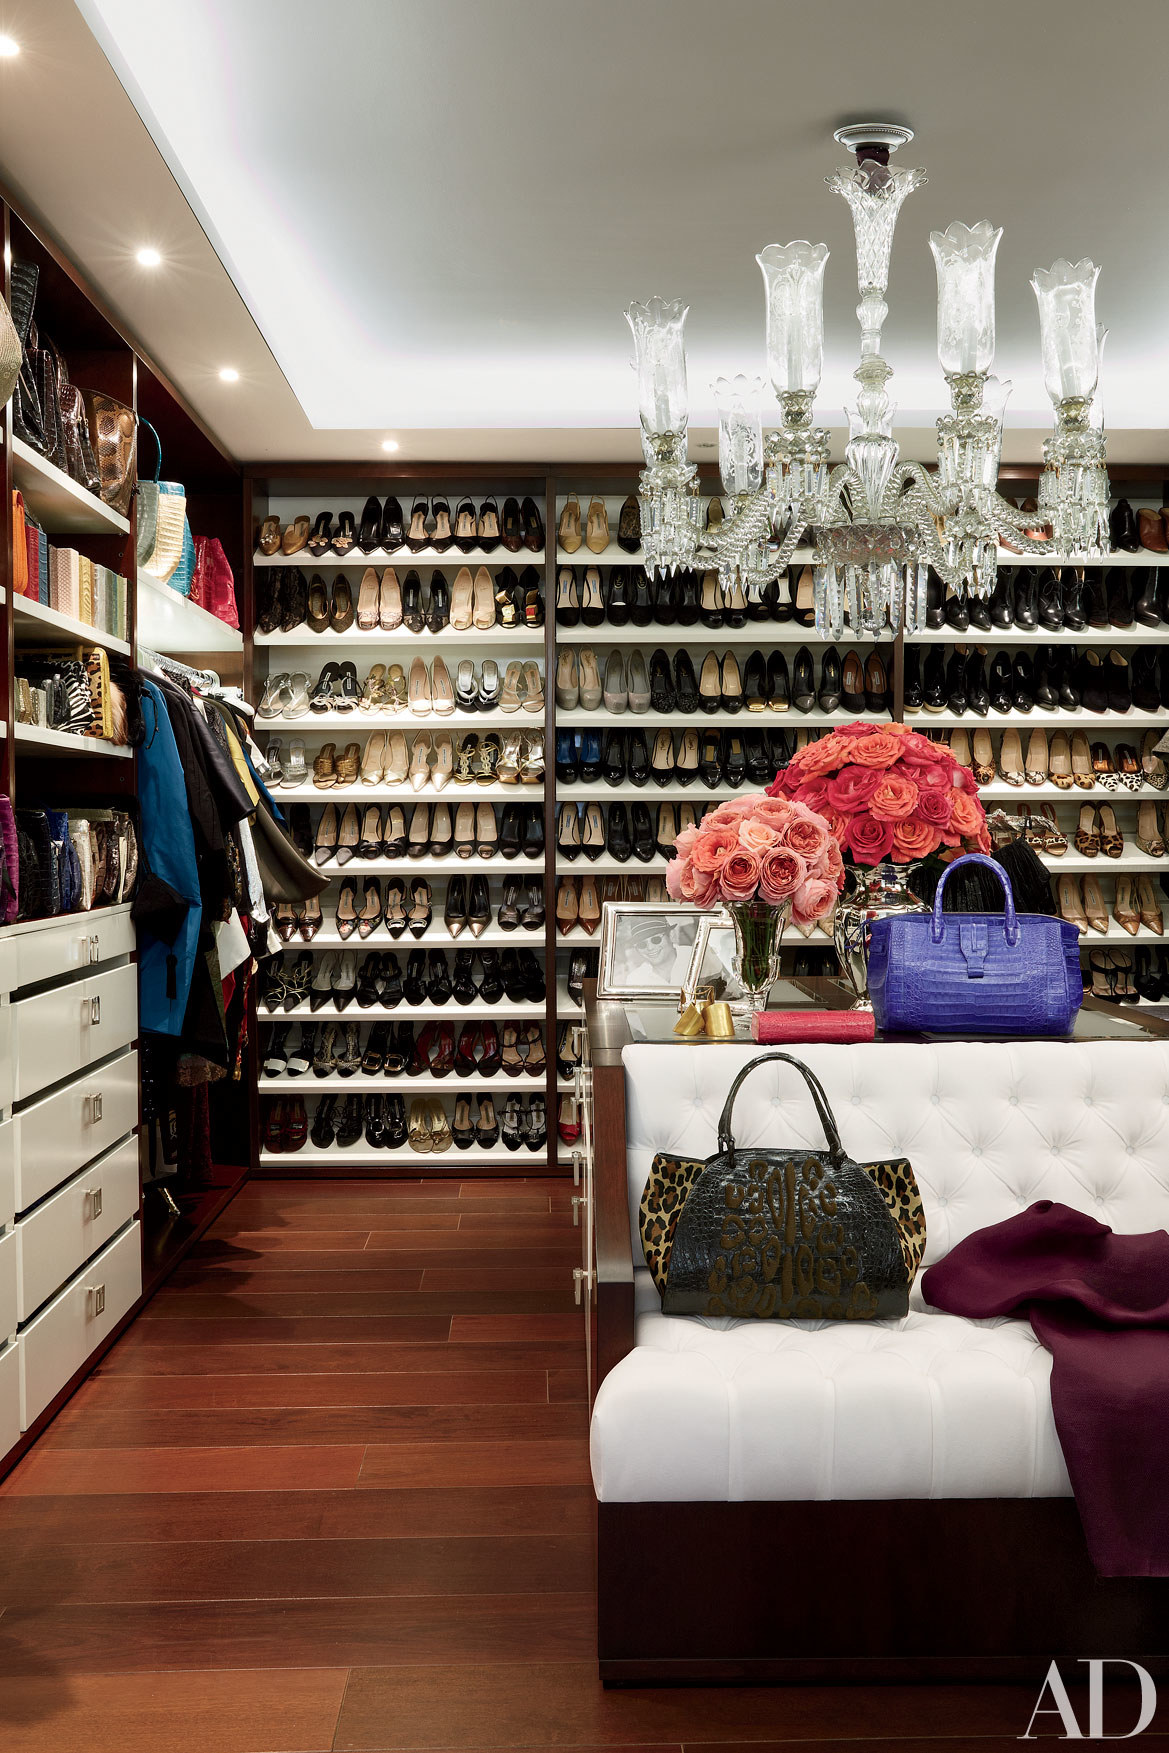 AD-Extravagant-Celebrity-Closets-22